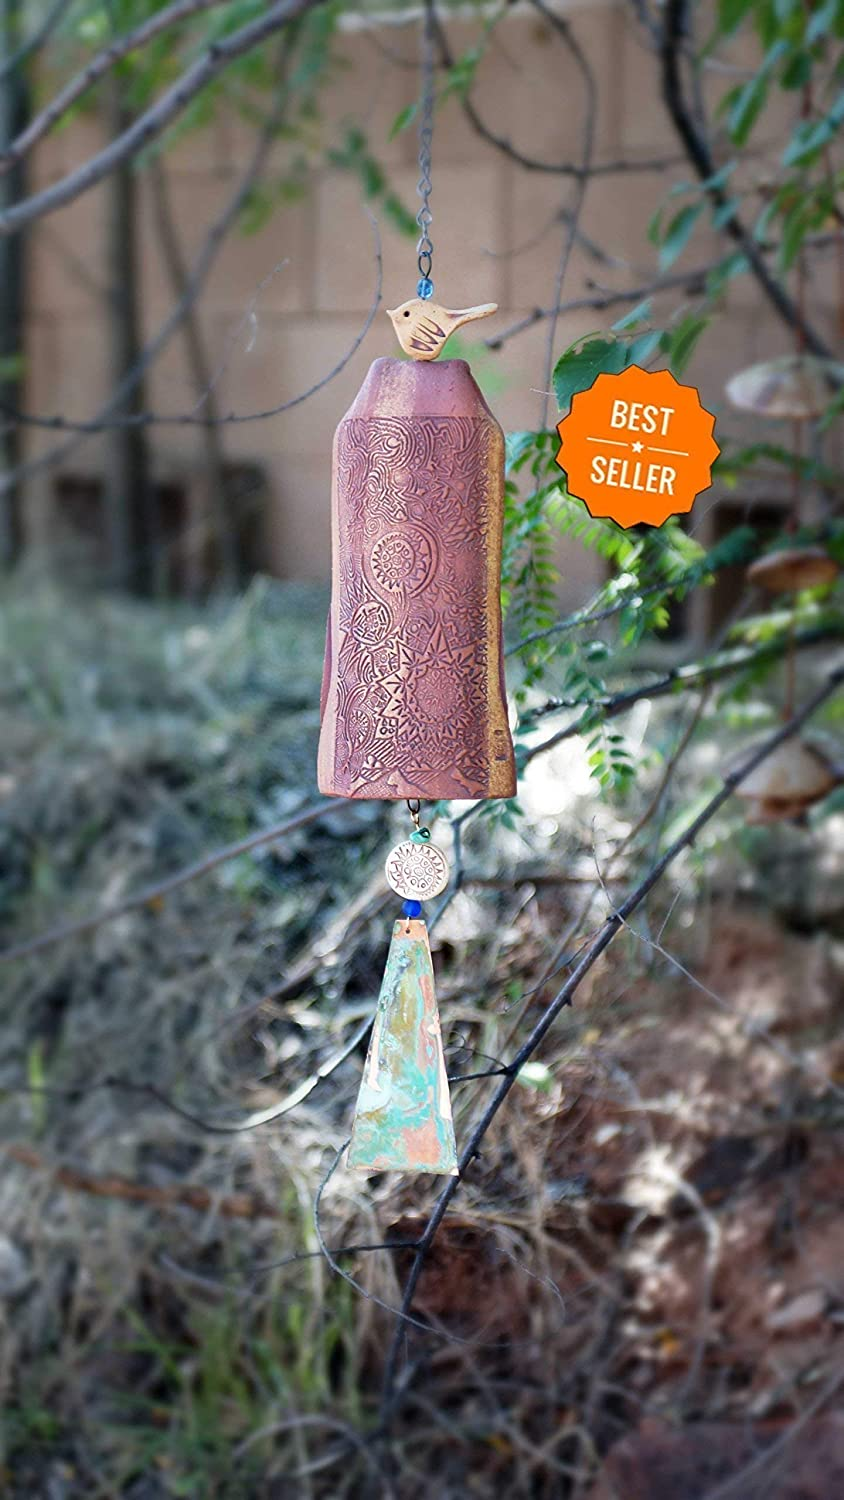 38b13fd9b2d7 Wedding Gifts Handmade Wind Chime Nature Art Weddingwire Boho Garden Bell  Gift Ideas for Couples Bestselling Rustic Wedding Favor Romantic Gift Ideas  Newly ...